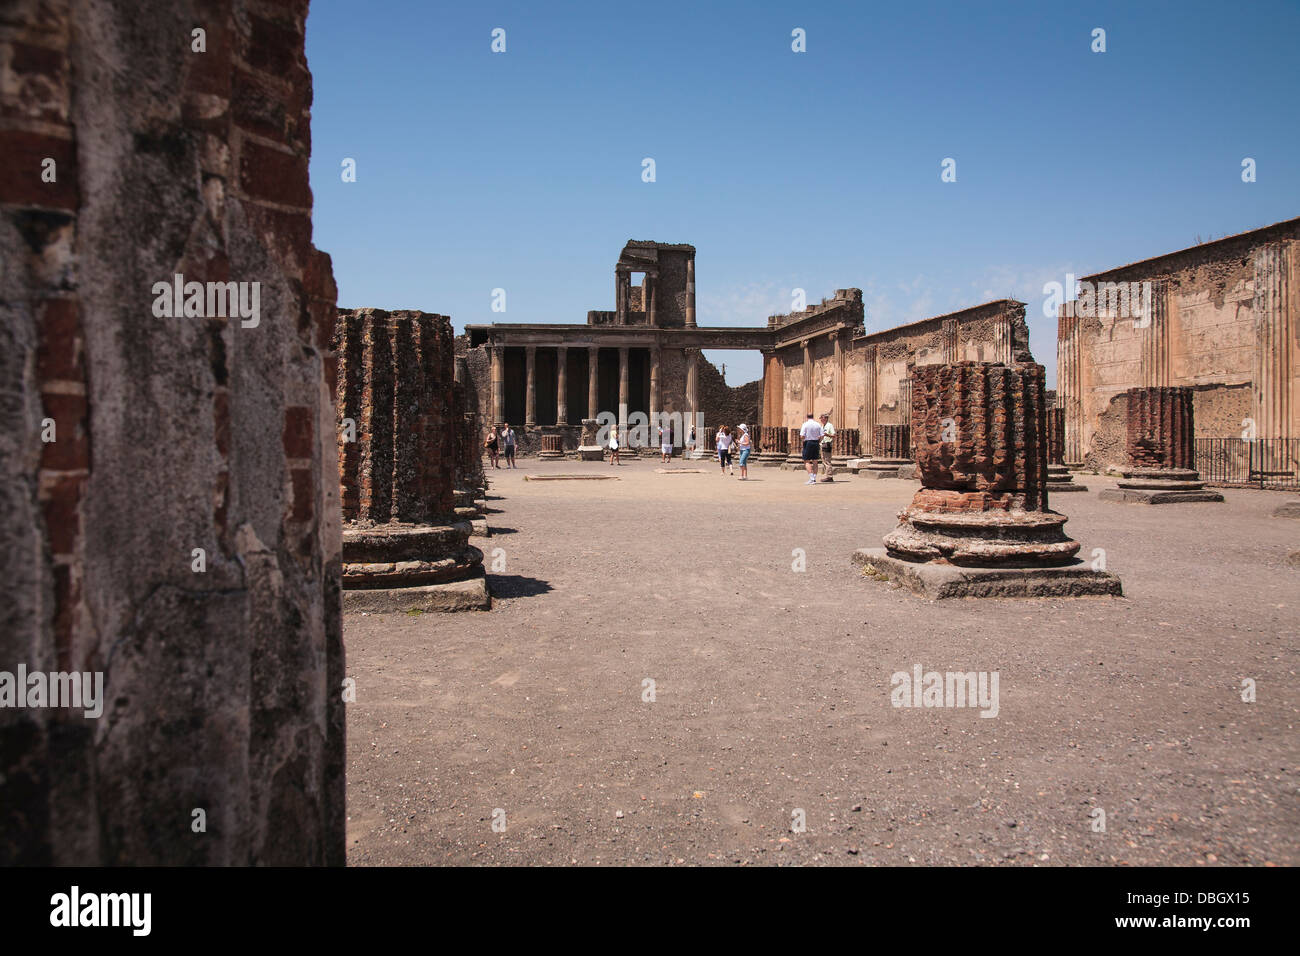 Tourists wander round the ruins of the basilica at Pompeii, Italy. - Stock Image